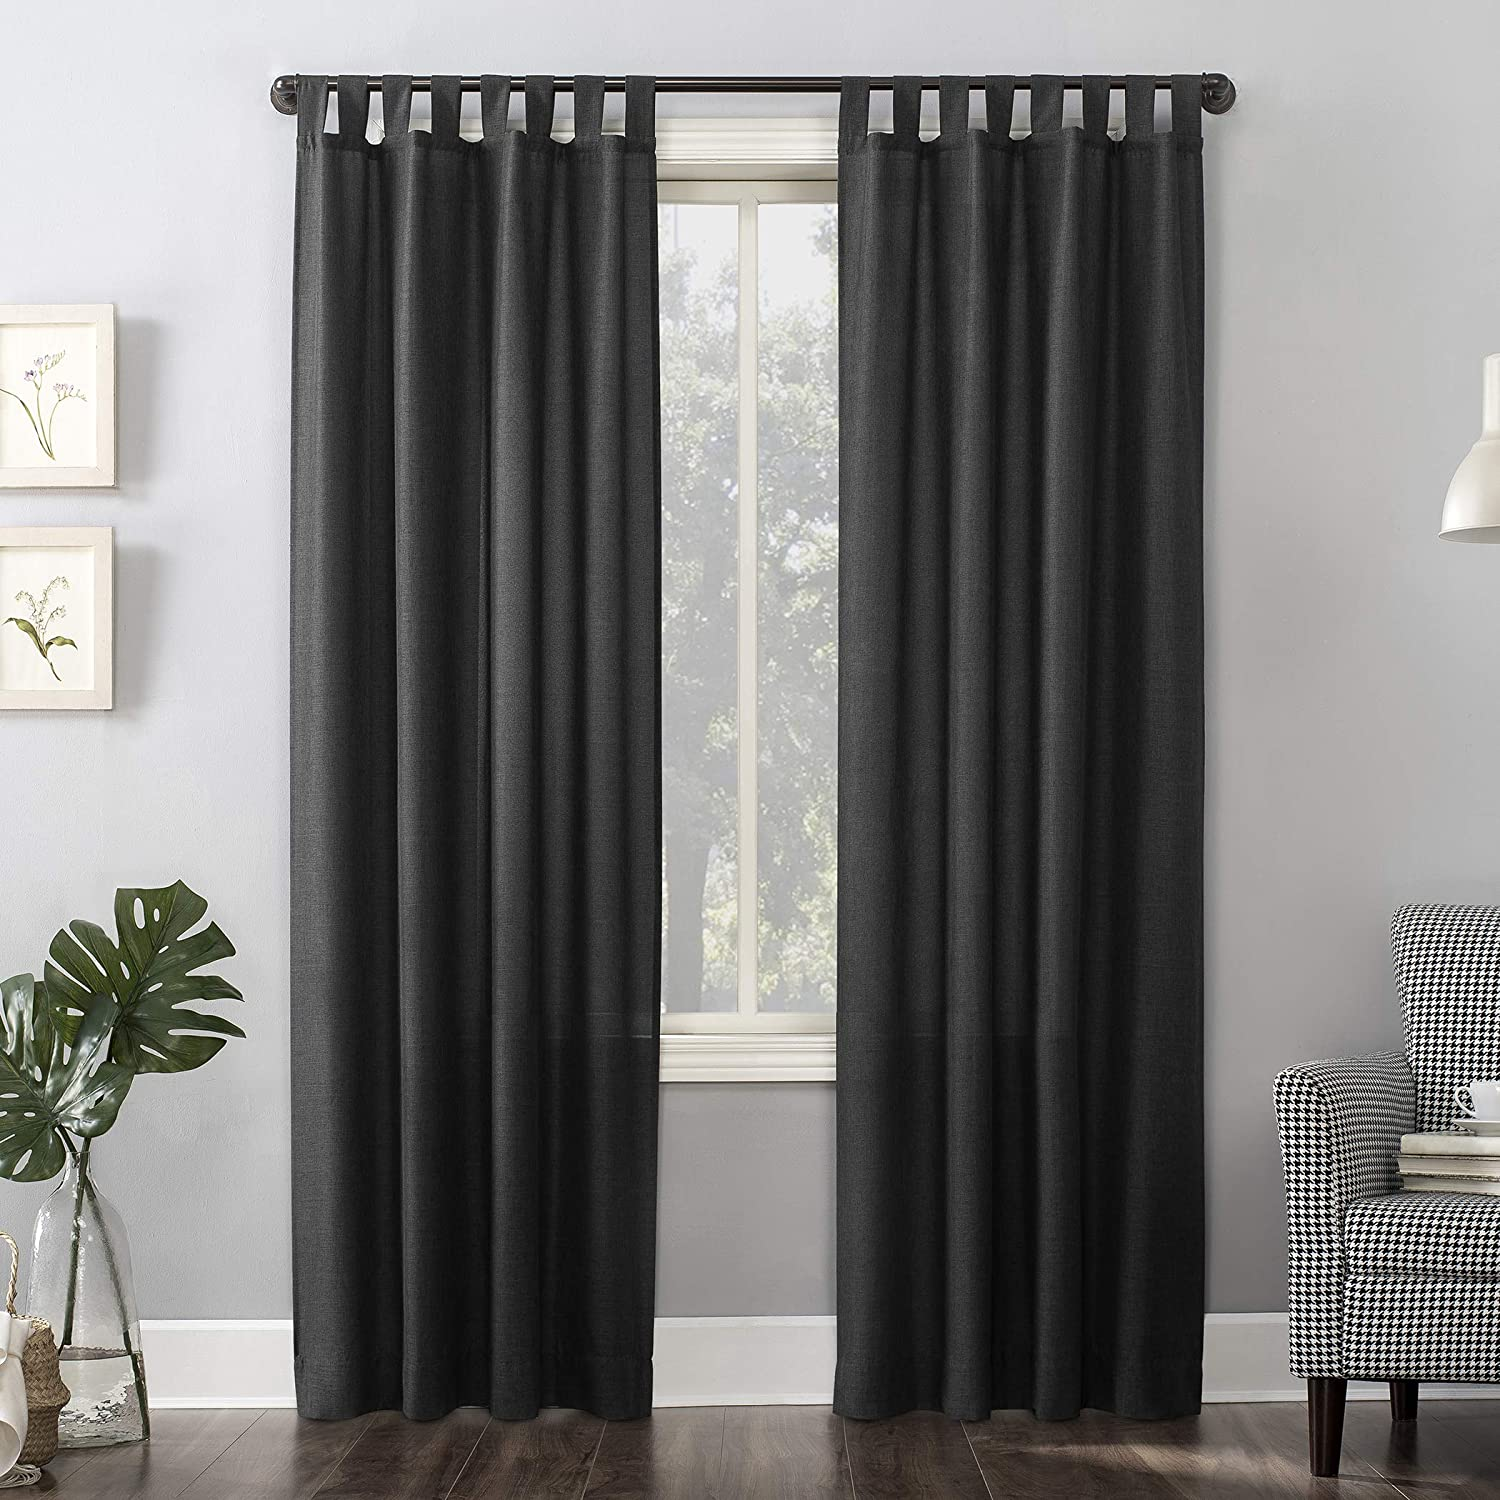 No 918 Trevor Heathered Texture Semi Sheer Tab Top Curtain Panel 40 X 84 Coal Gray Home Kitchen Amazon Com